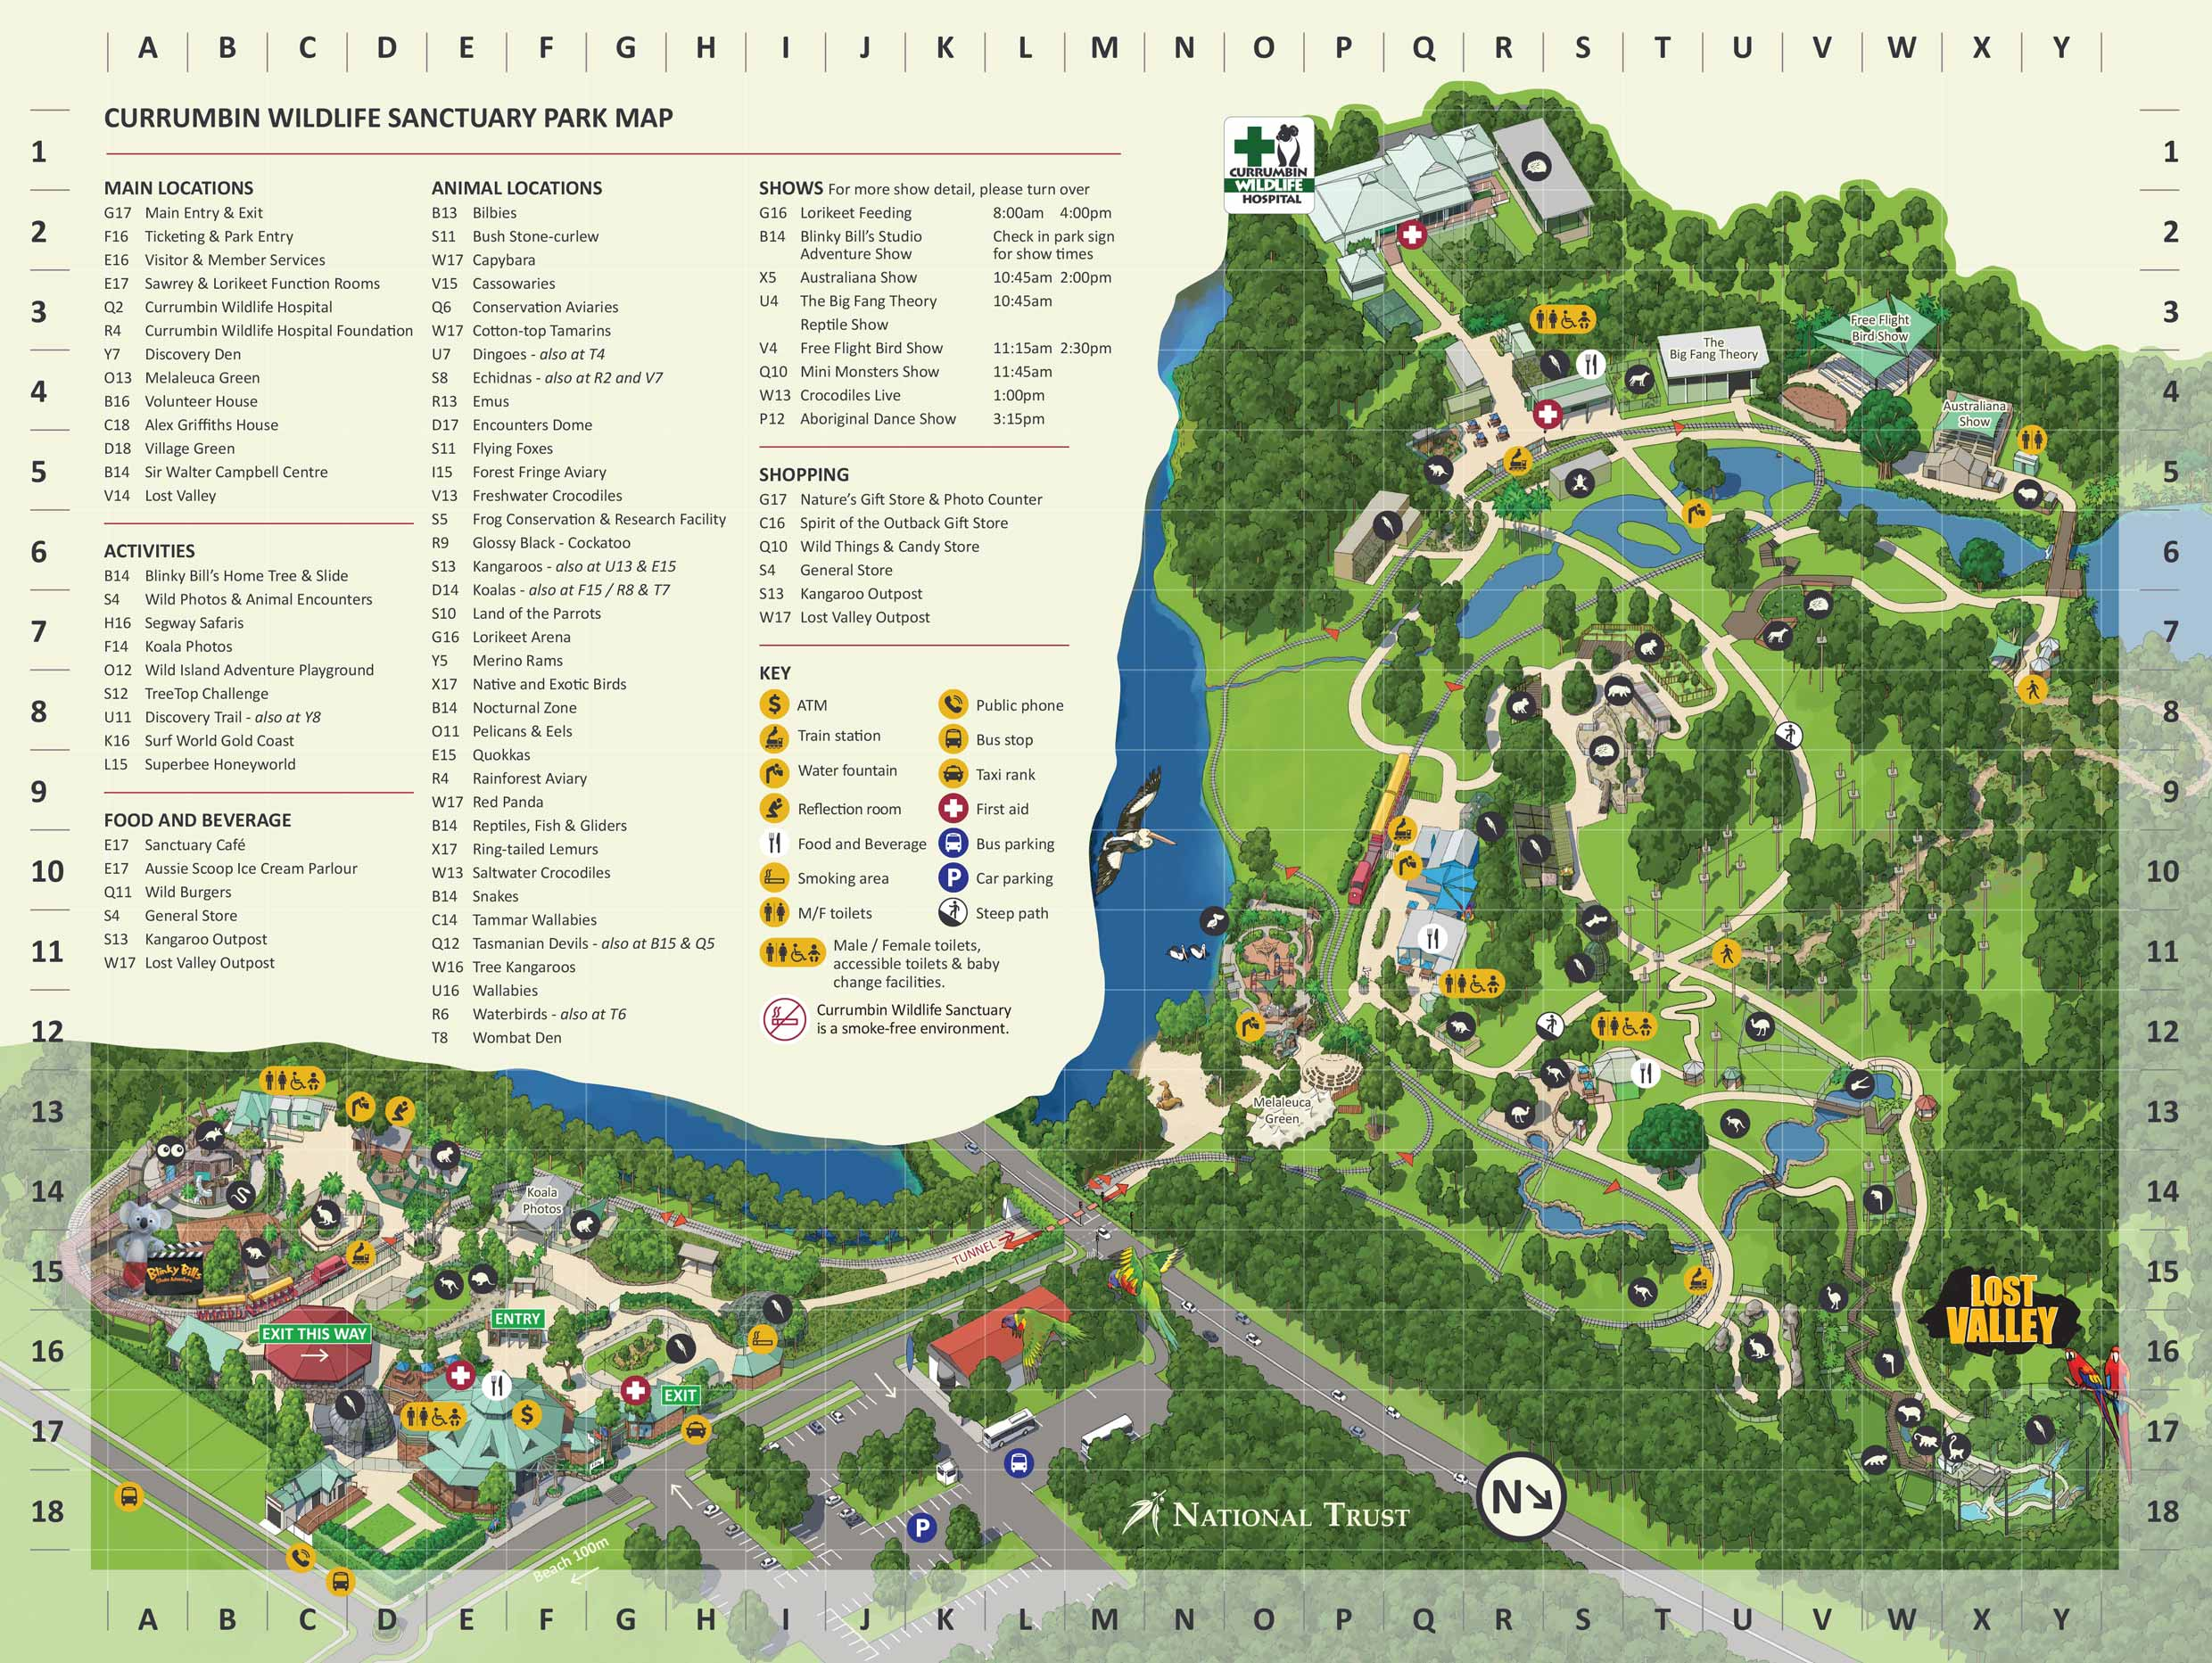 CWS-Park-Map---INSIDE-DEC17.jpg